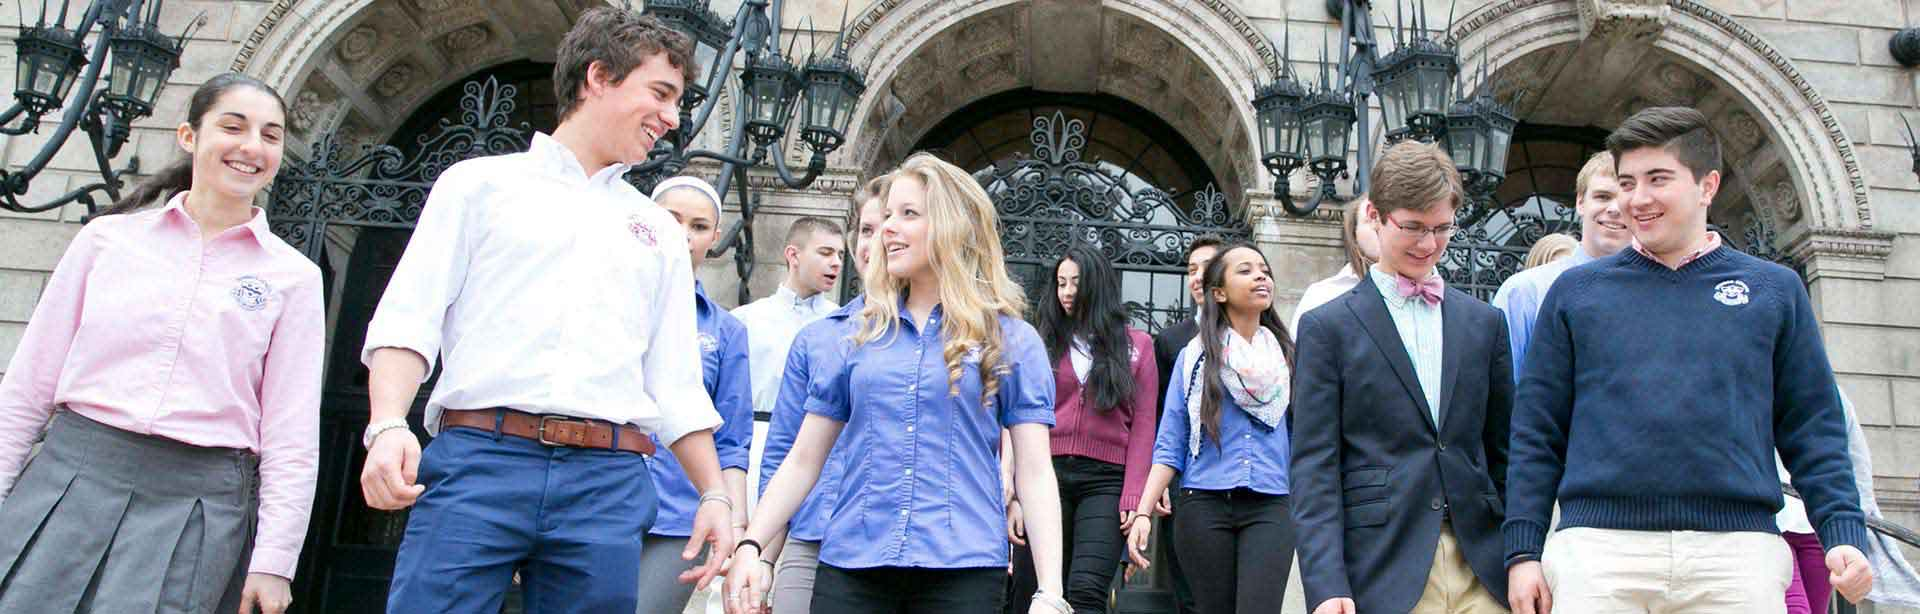 Students at the Newman School walk down the steps of the Boston Public Library